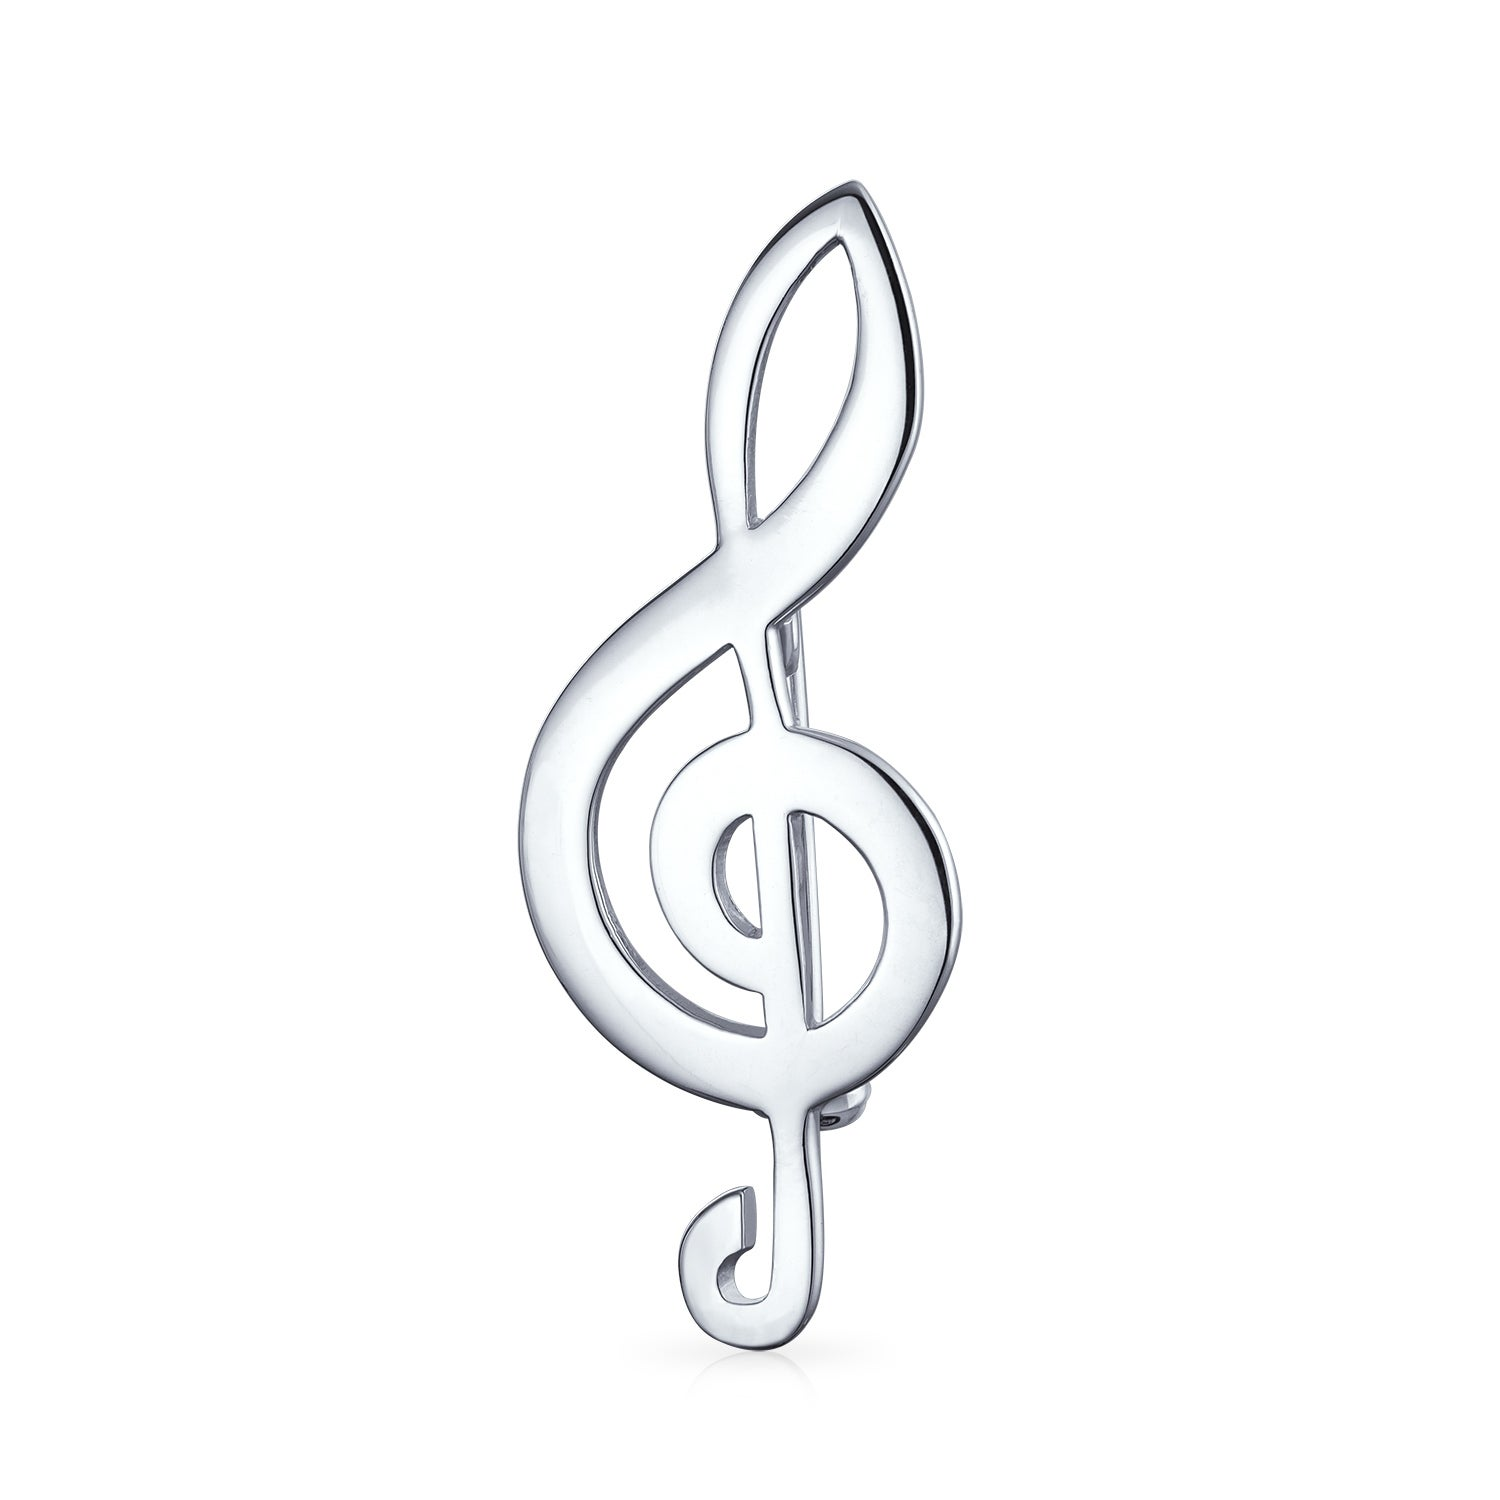 CENWA Musical Note Pin Brooch Jewelry Treble Clef Brooch Music Lover Musician Jewelry Gift for Music Teacher Music Jewelry Band